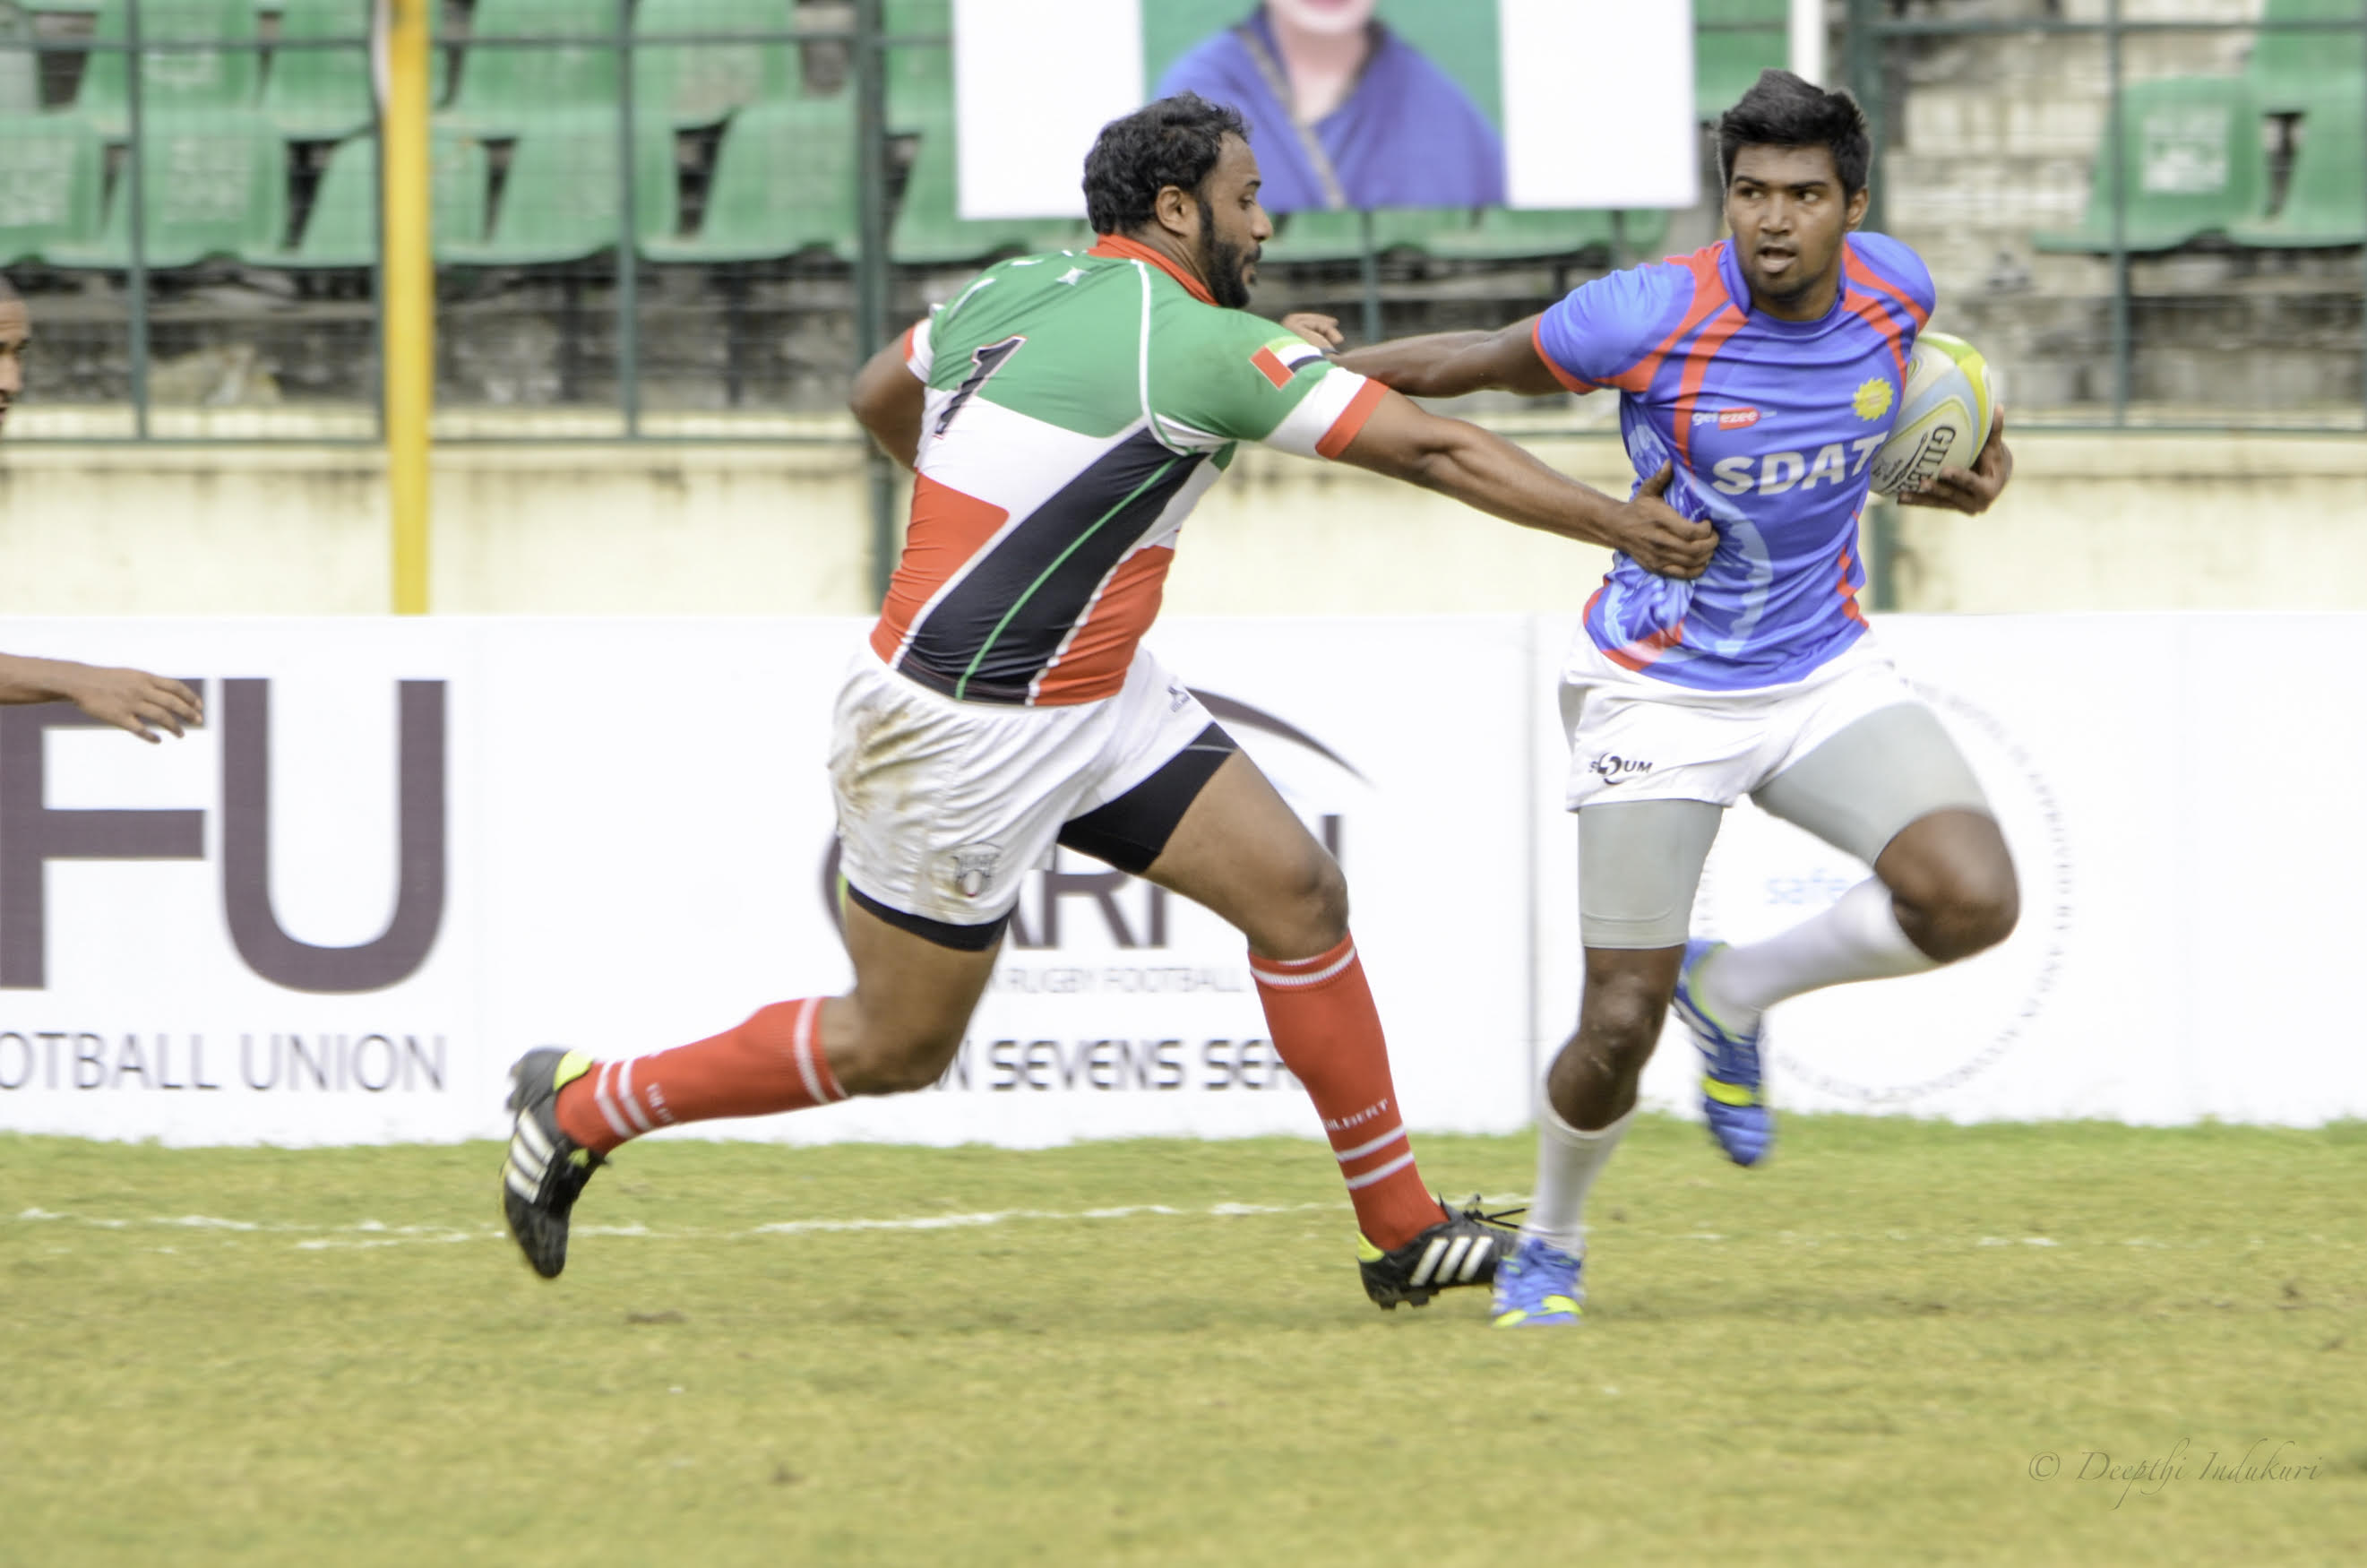 roshan handling a tackle